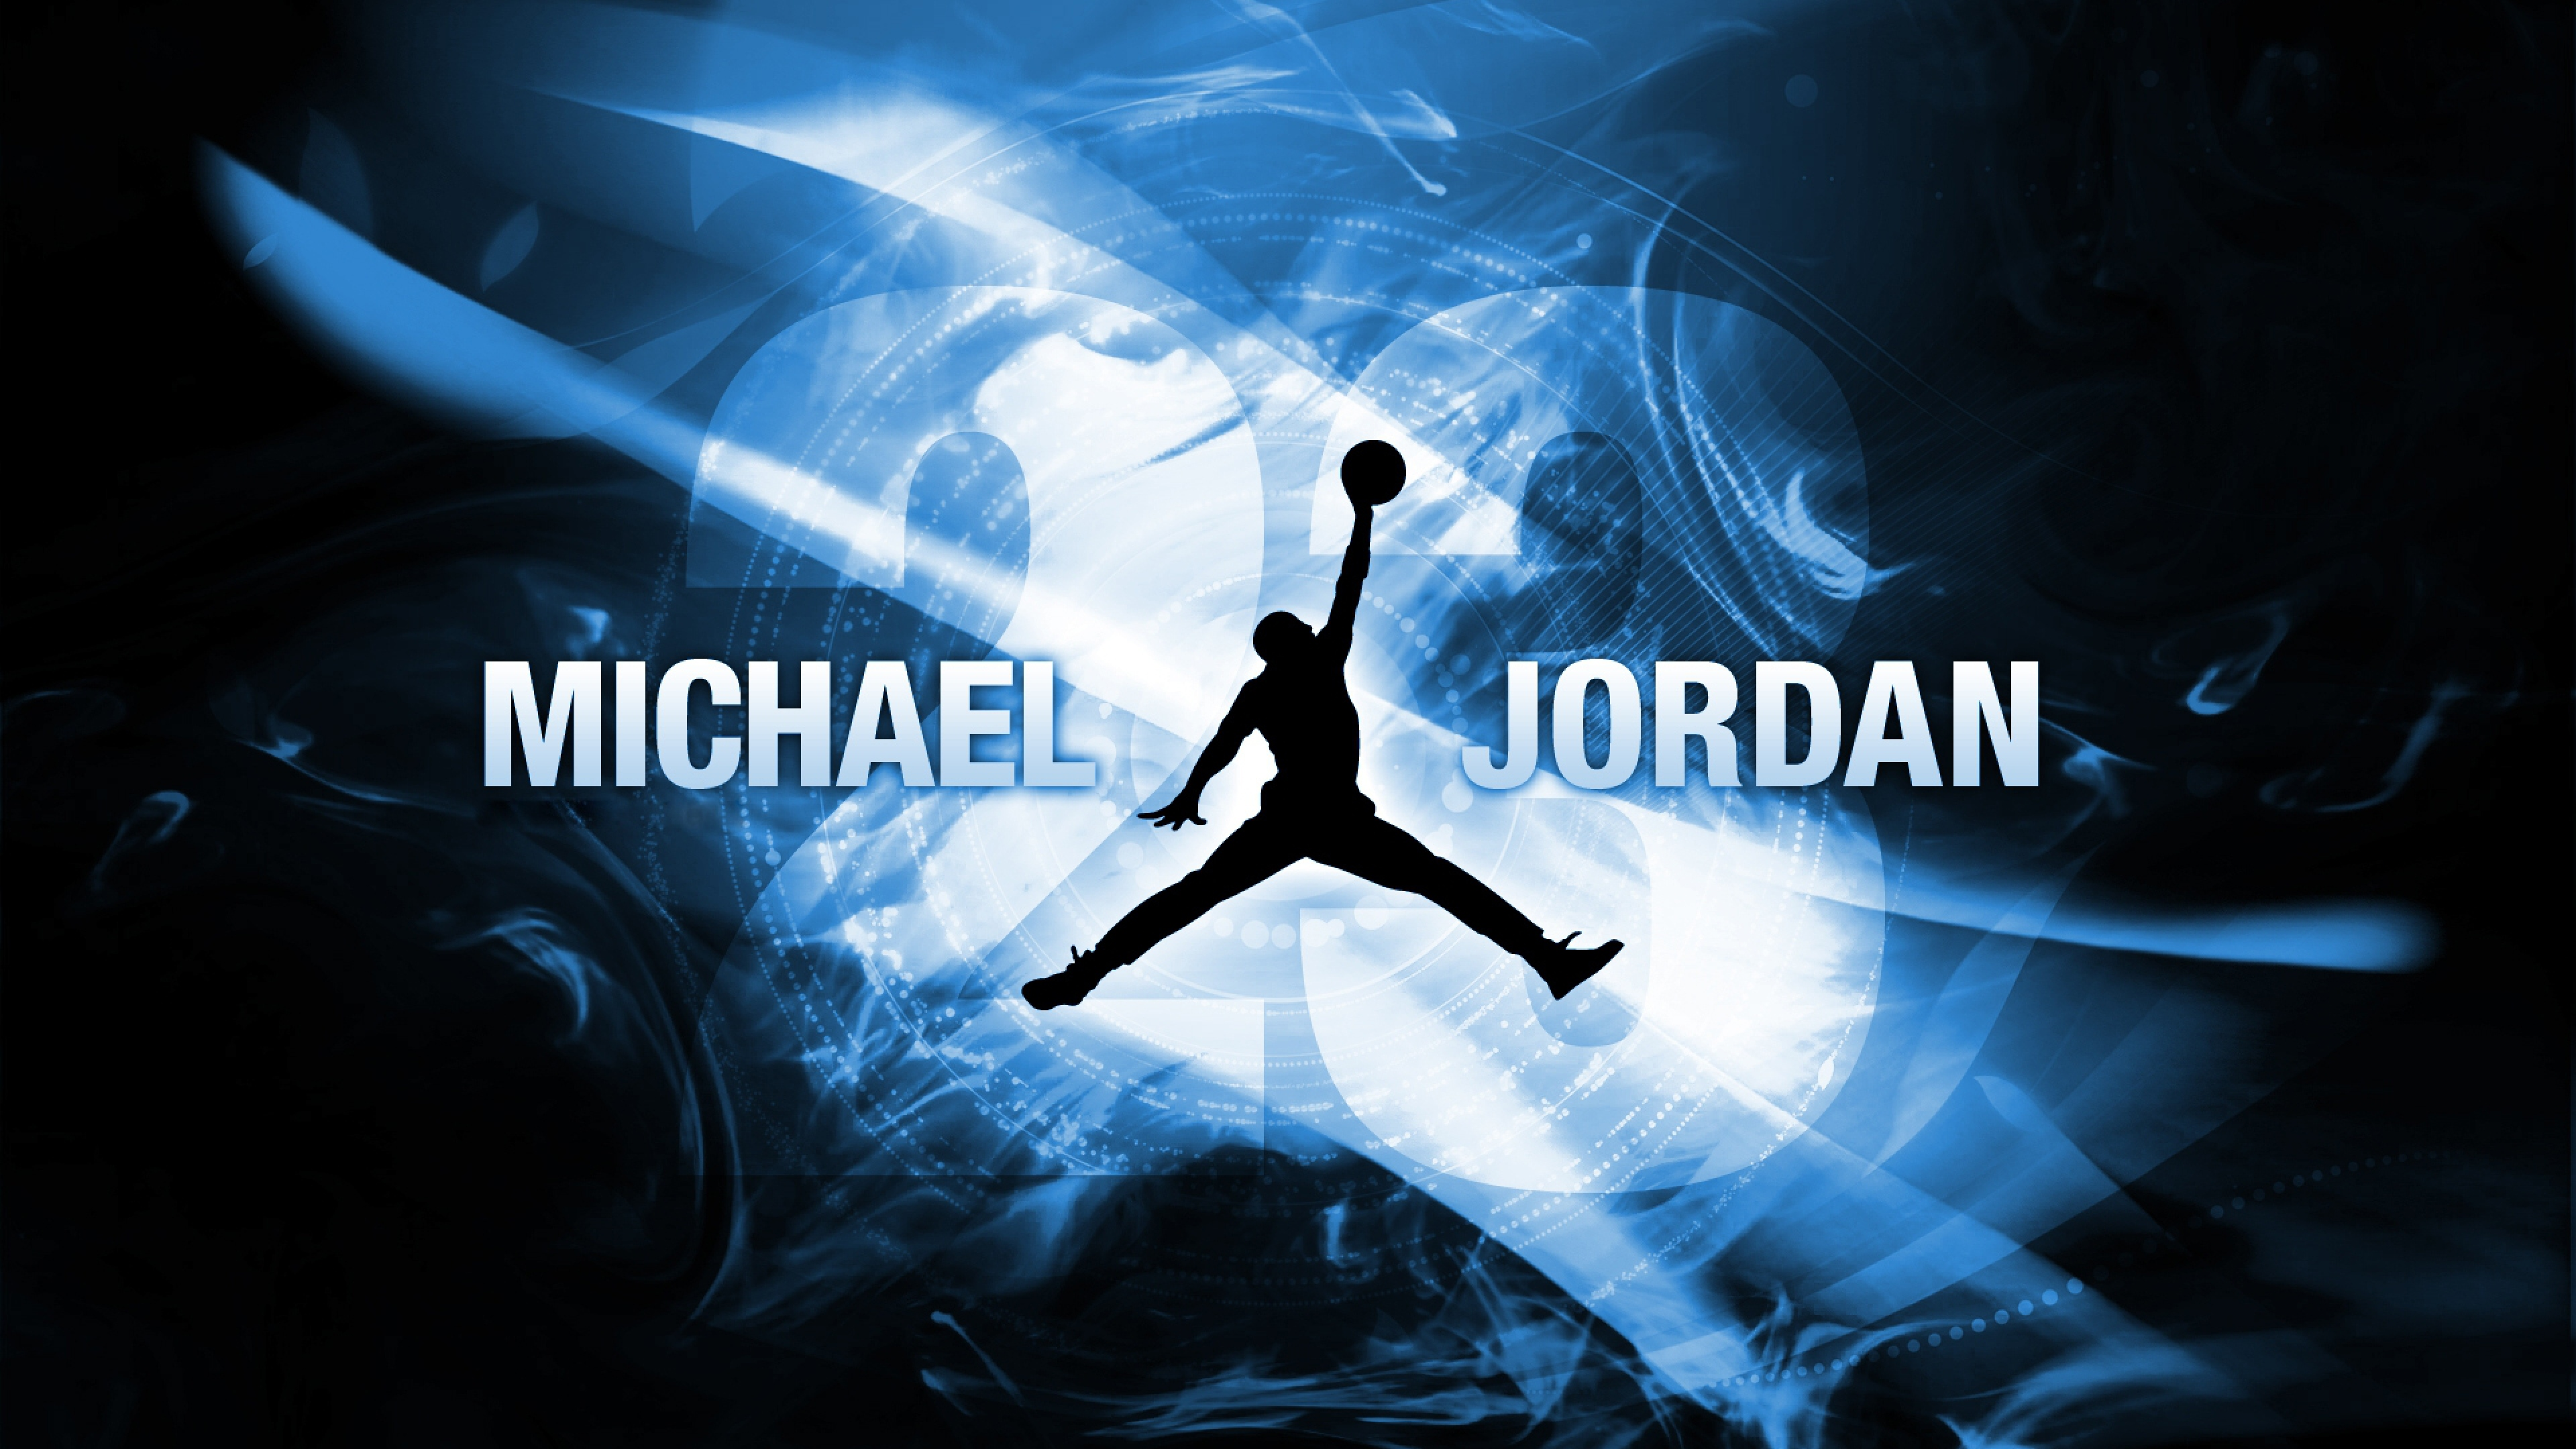 Download Wallpaper 3840x2160 michael jordan basketball player ball 3840x2160